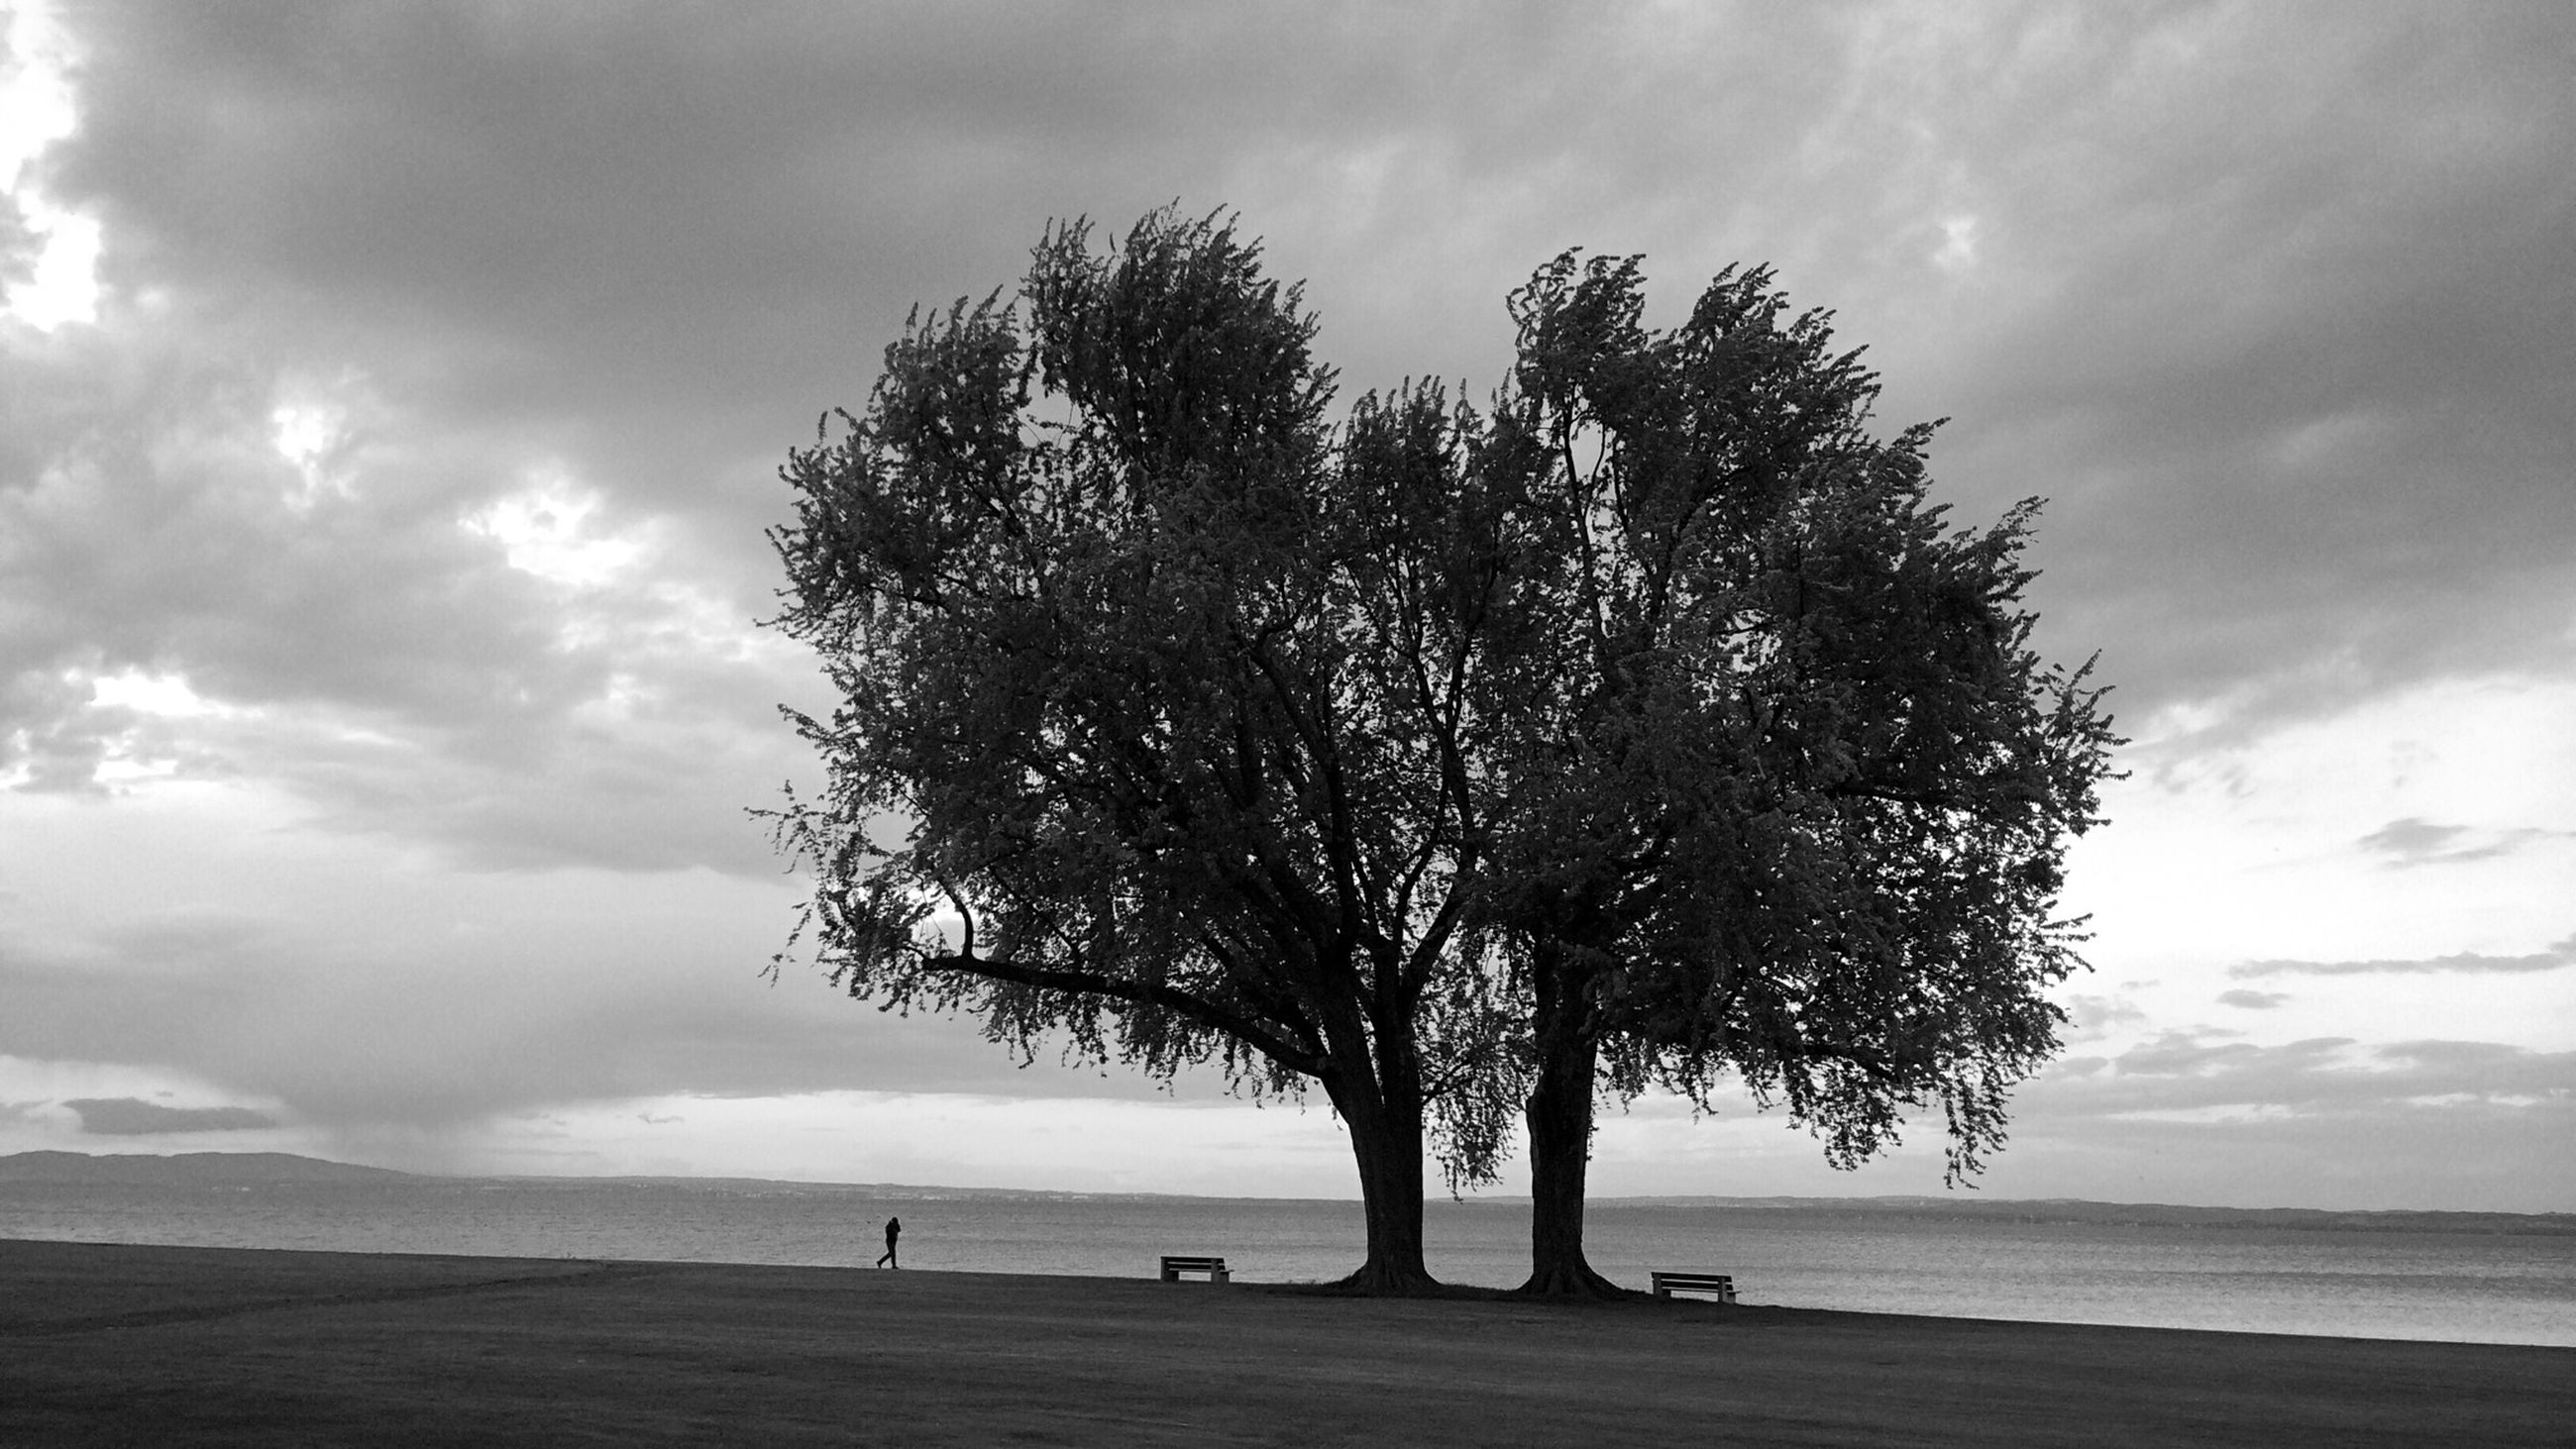 sky, tree, tranquility, tranquil scene, sea, scenics, horizon over water, beauty in nature, cloud - sky, beach, nature, water, cloud, cloudy, silhouette, shore, single tree, tree trunk, idyllic, growth